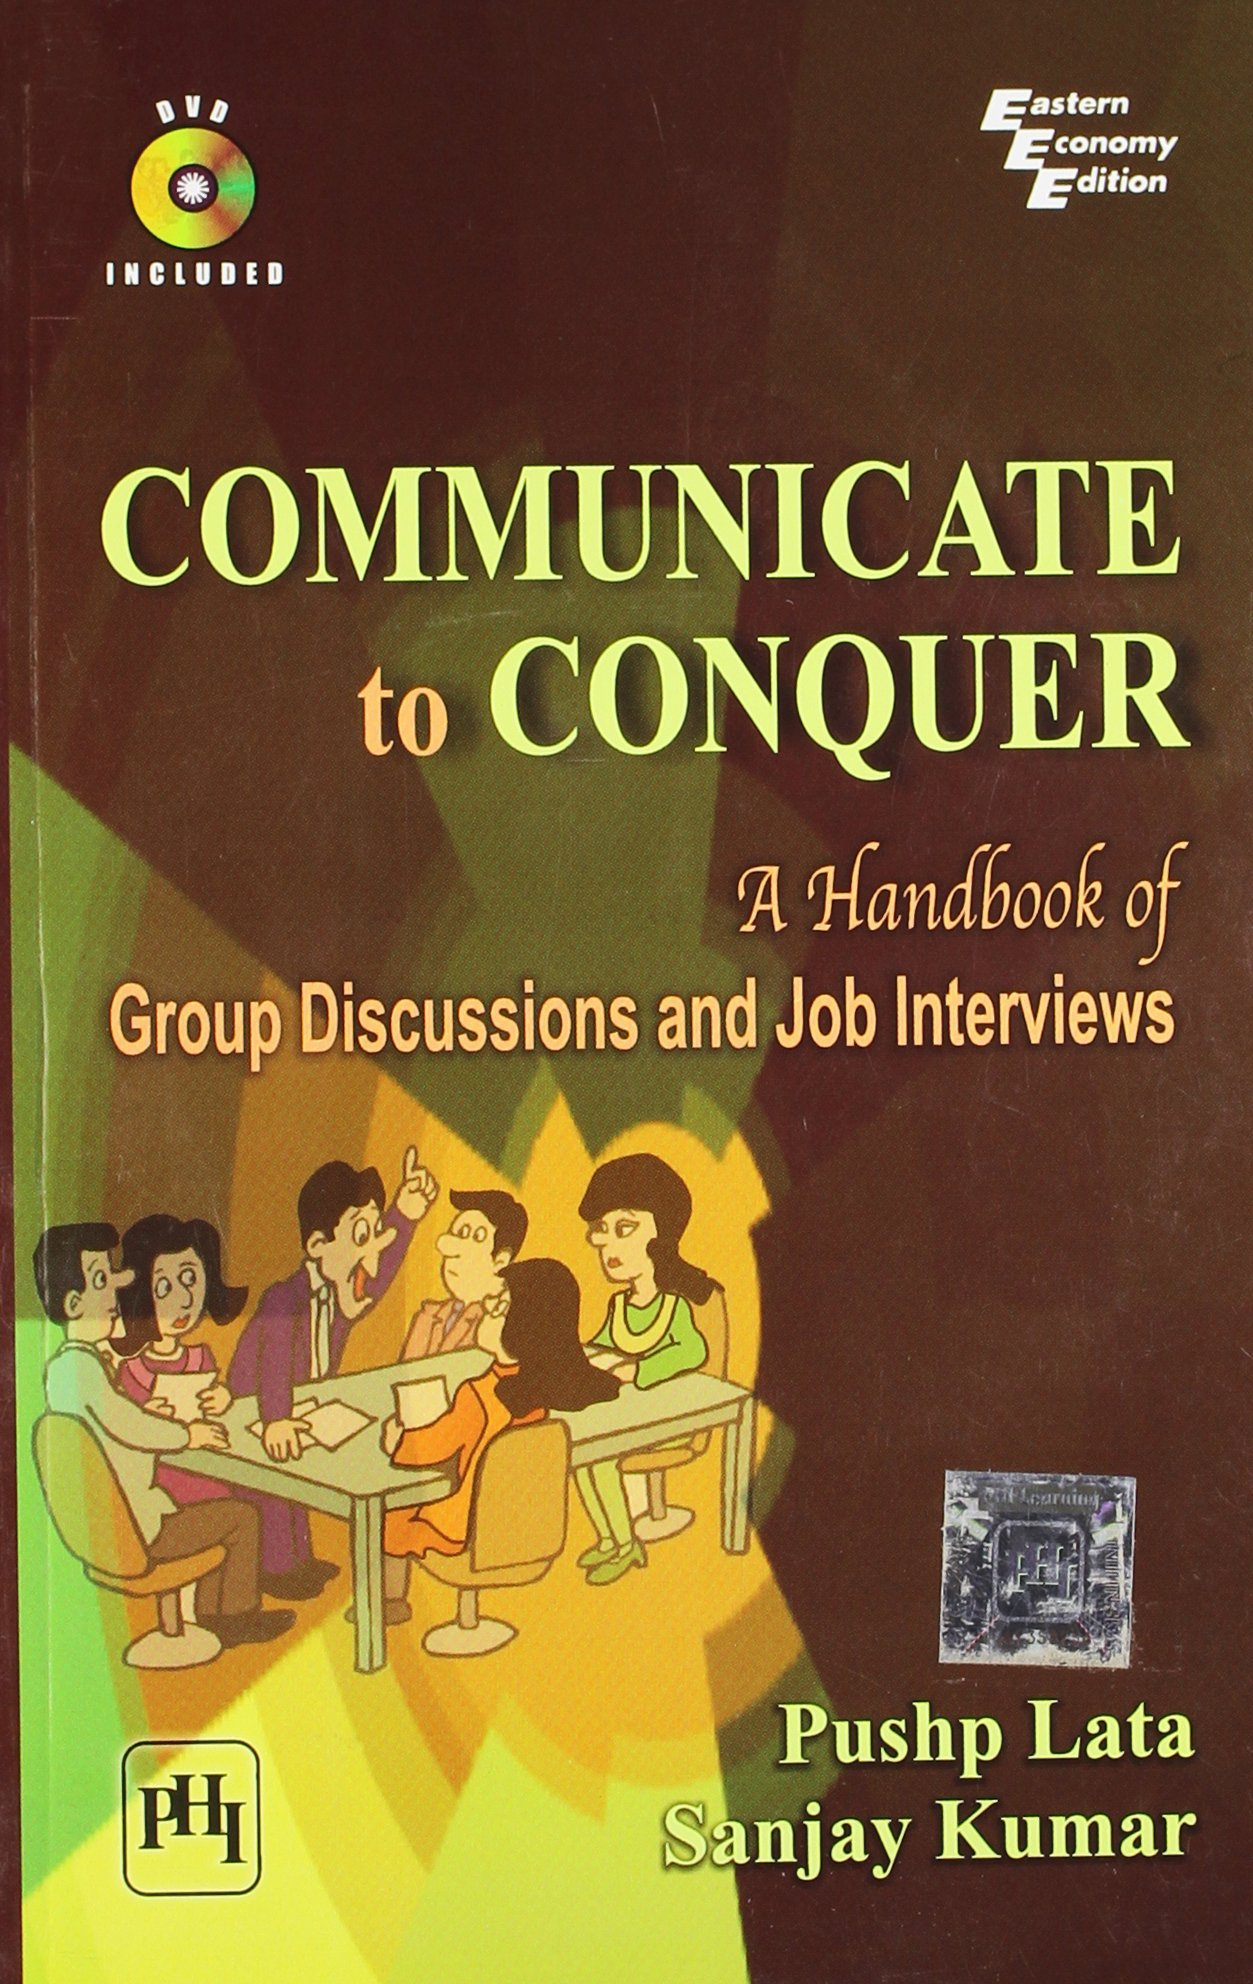 Communicate to Conquer: A Handbook of Group Discussions and Job Interviews